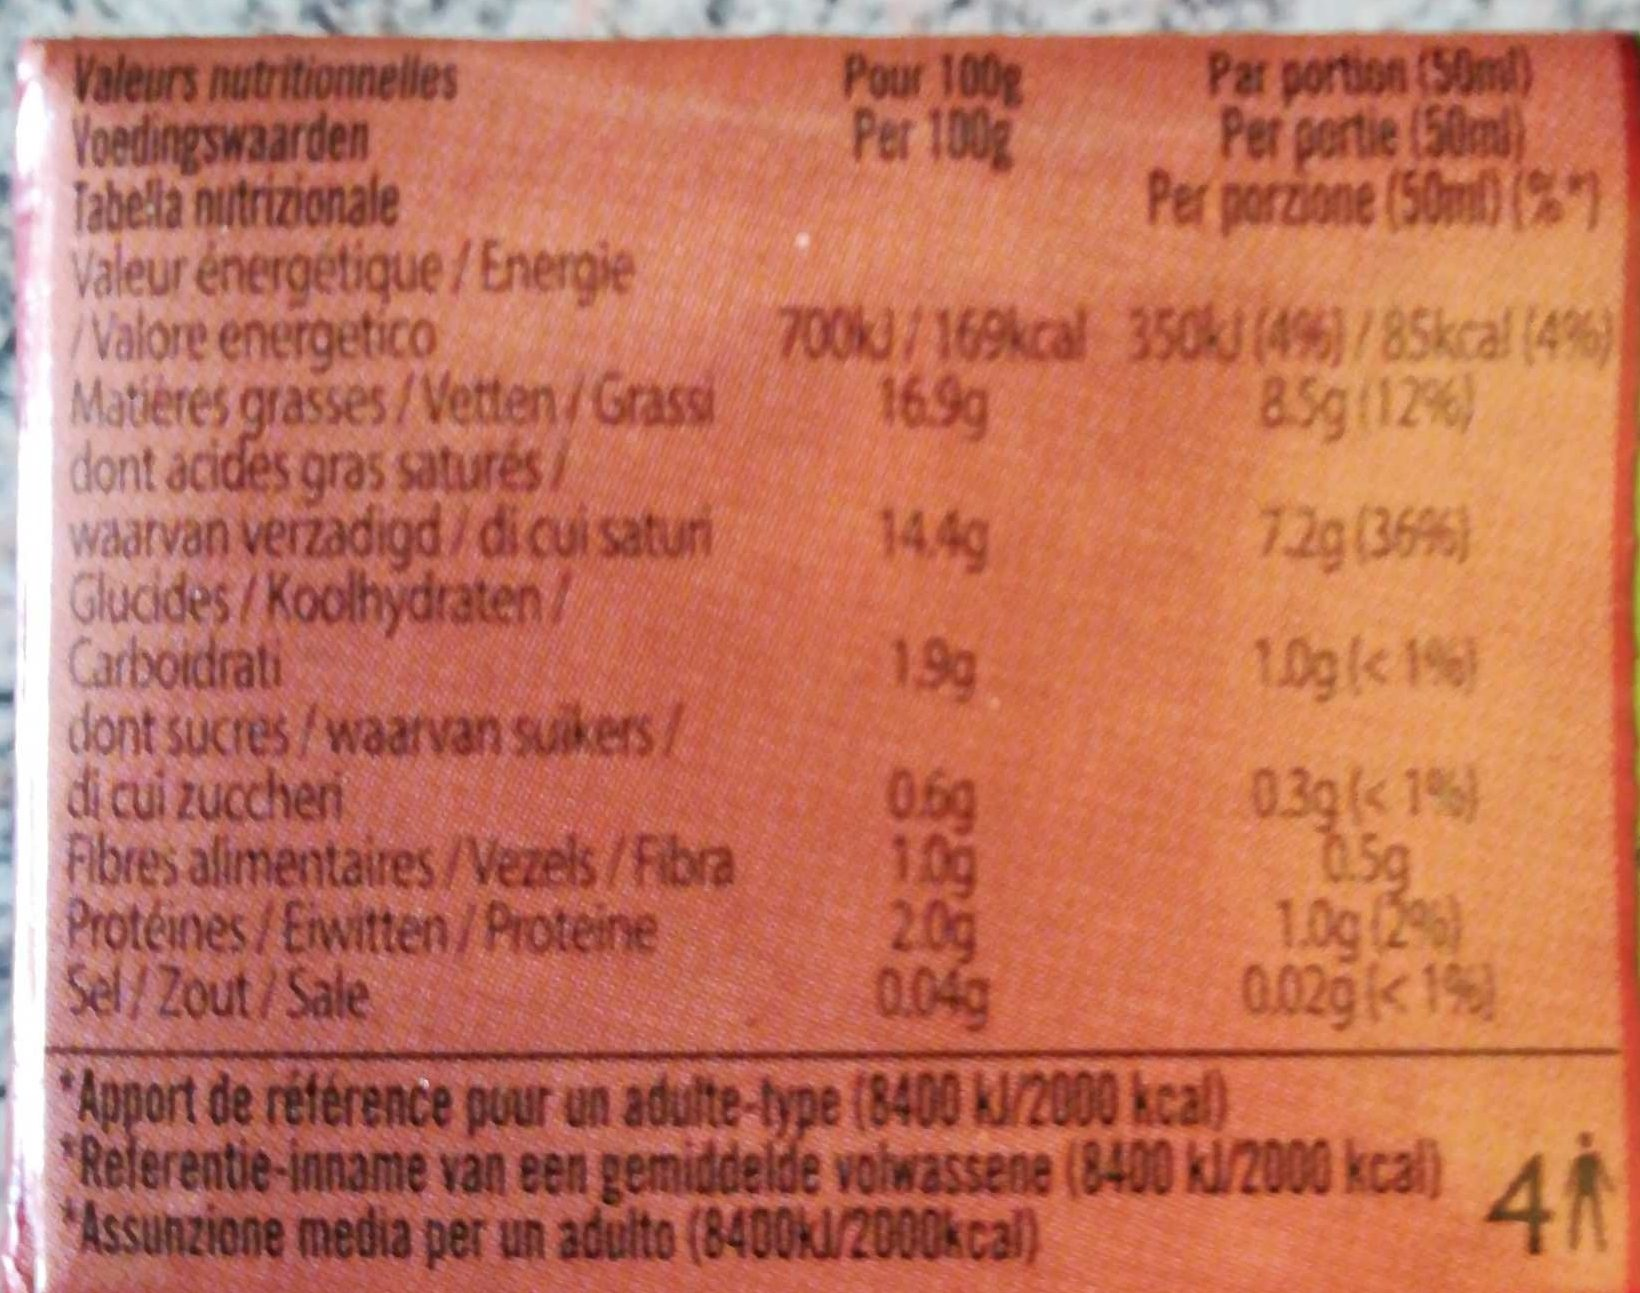 Lait de coco - Nutrition facts